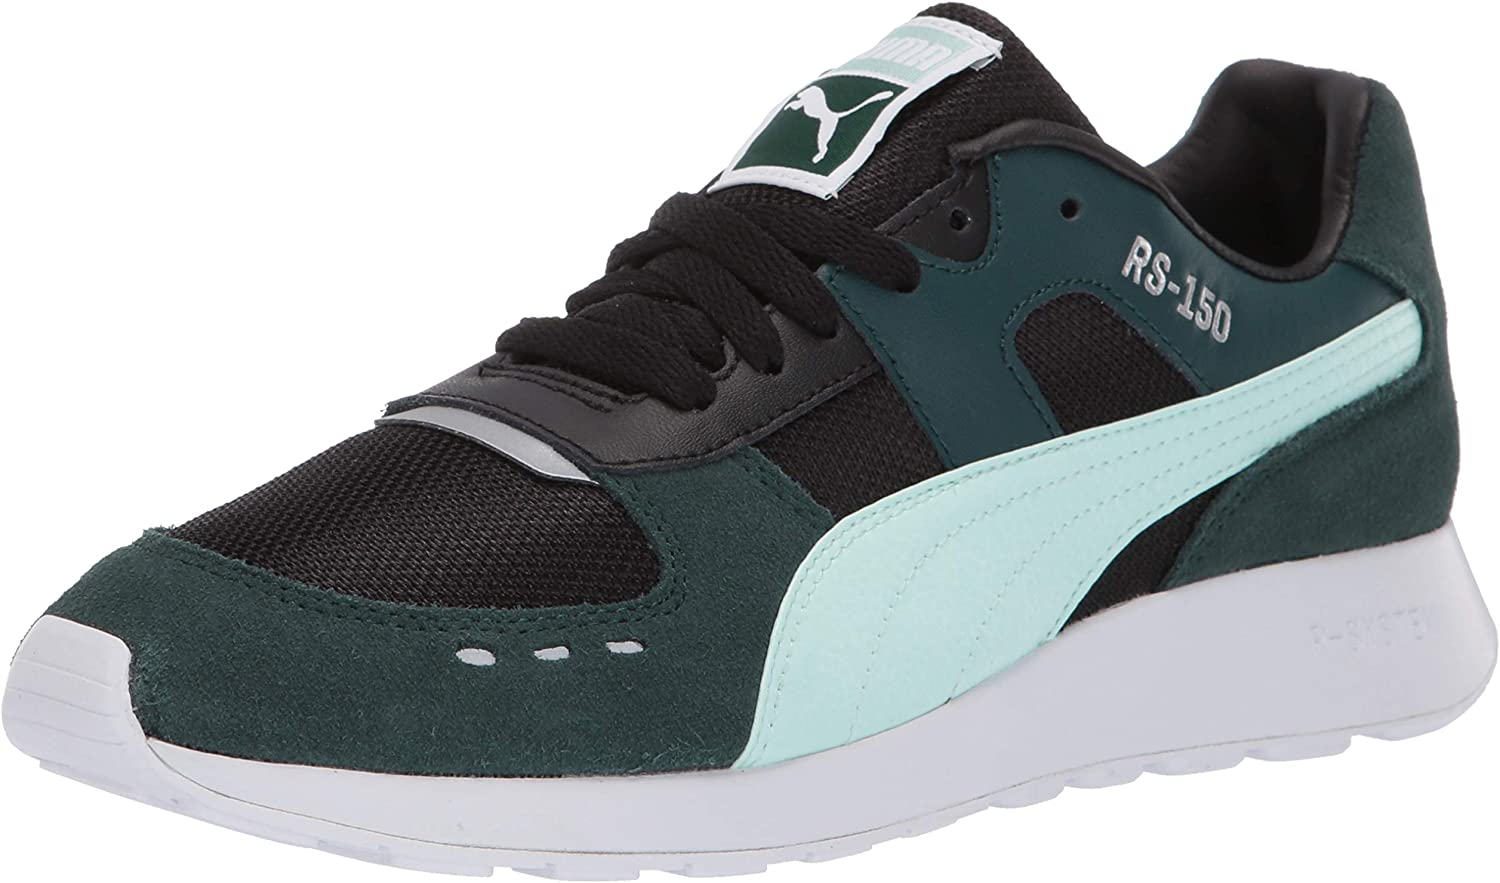 PUMA Womens Rs-150 Mesh Sneakers Shoes Casual - Green